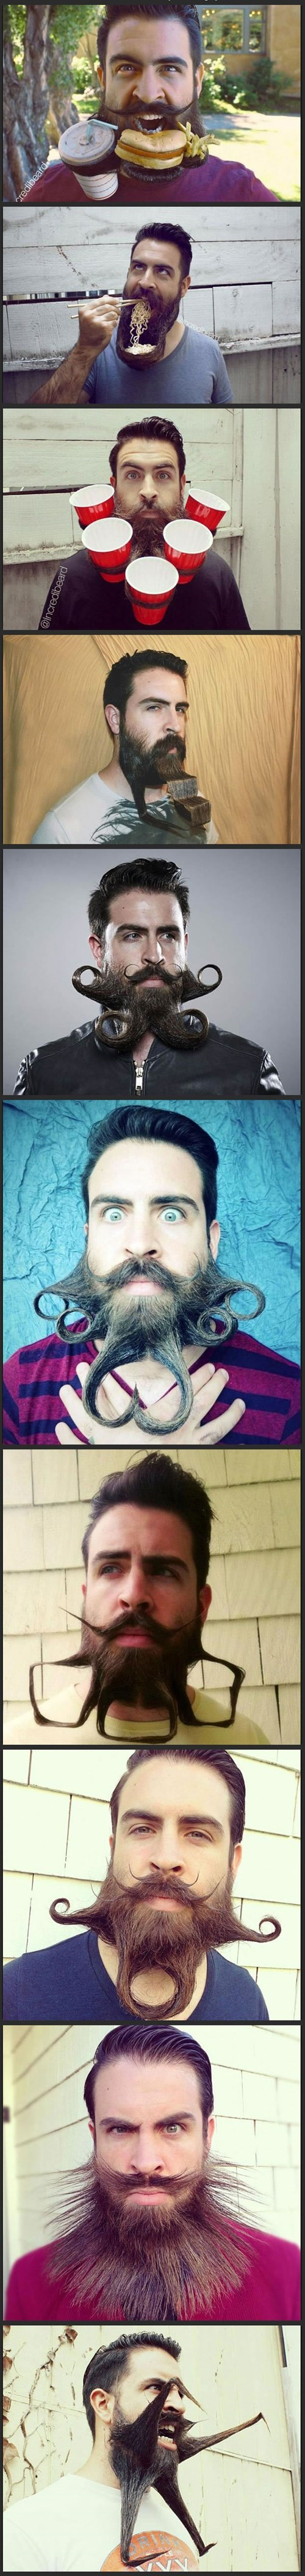 incredibeard no shave november - 7885813760